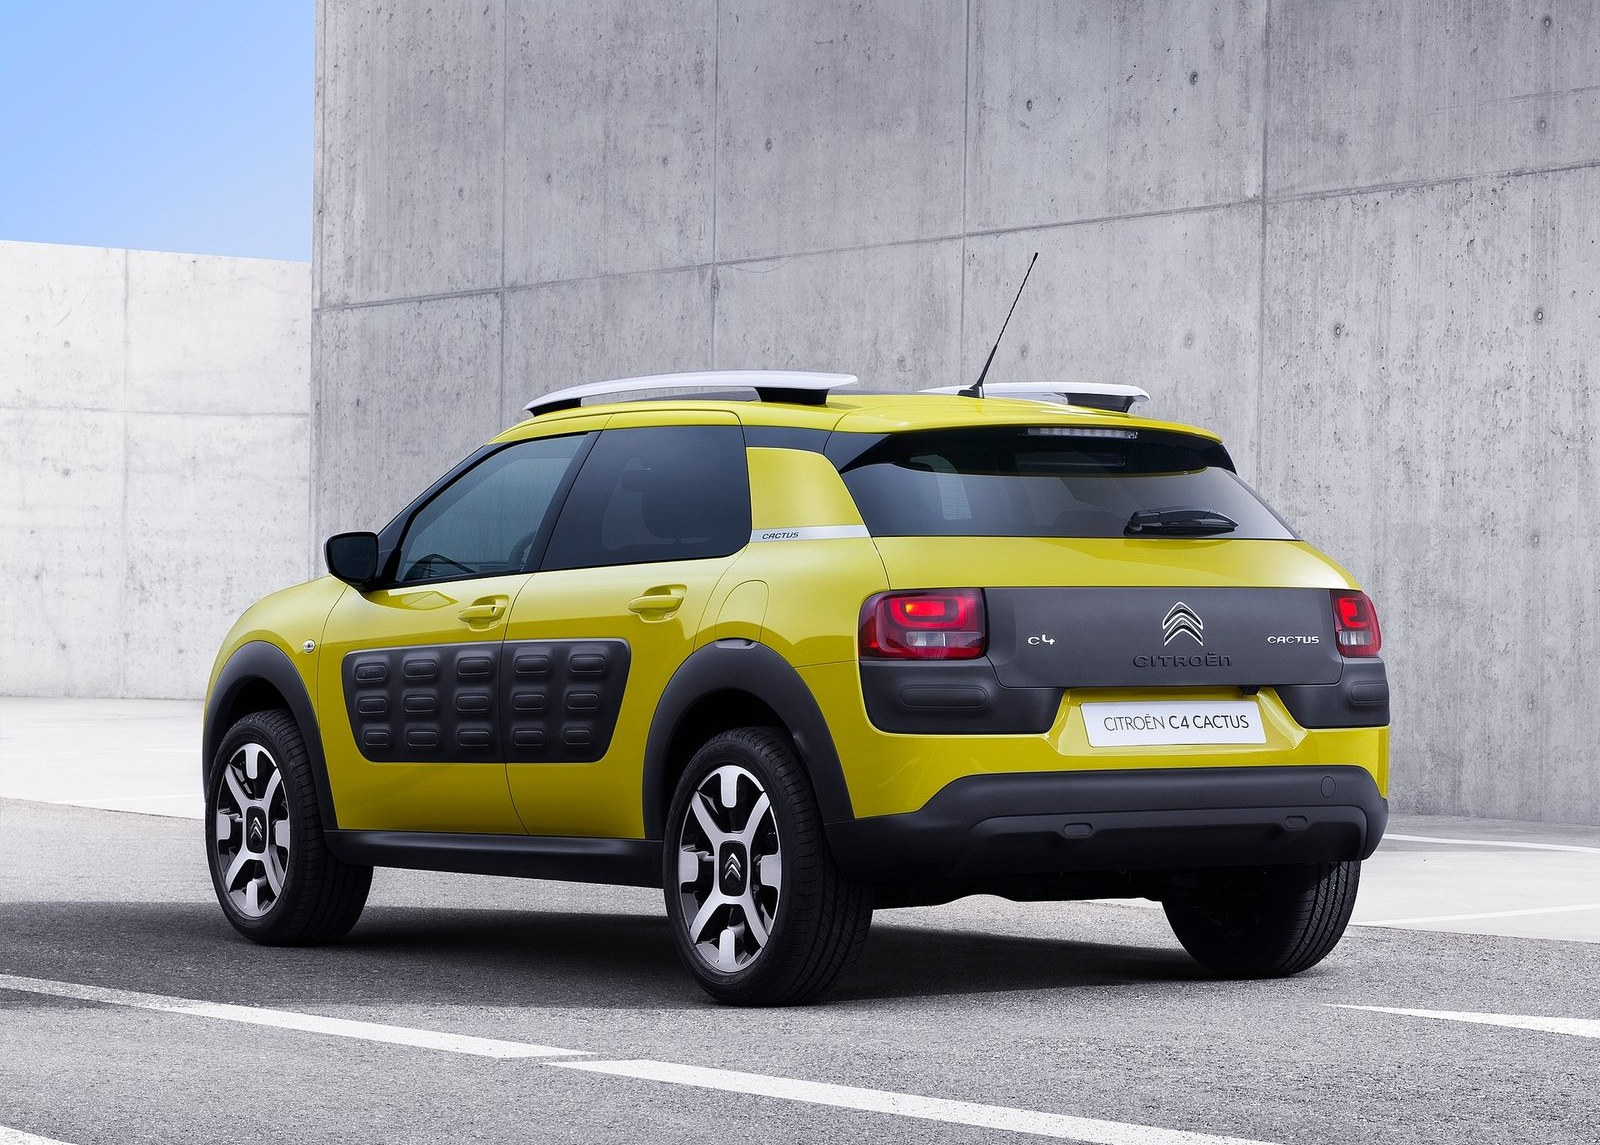 2015 Citroen C4 Cactus Rear Side Exterior (View 2 of 21)